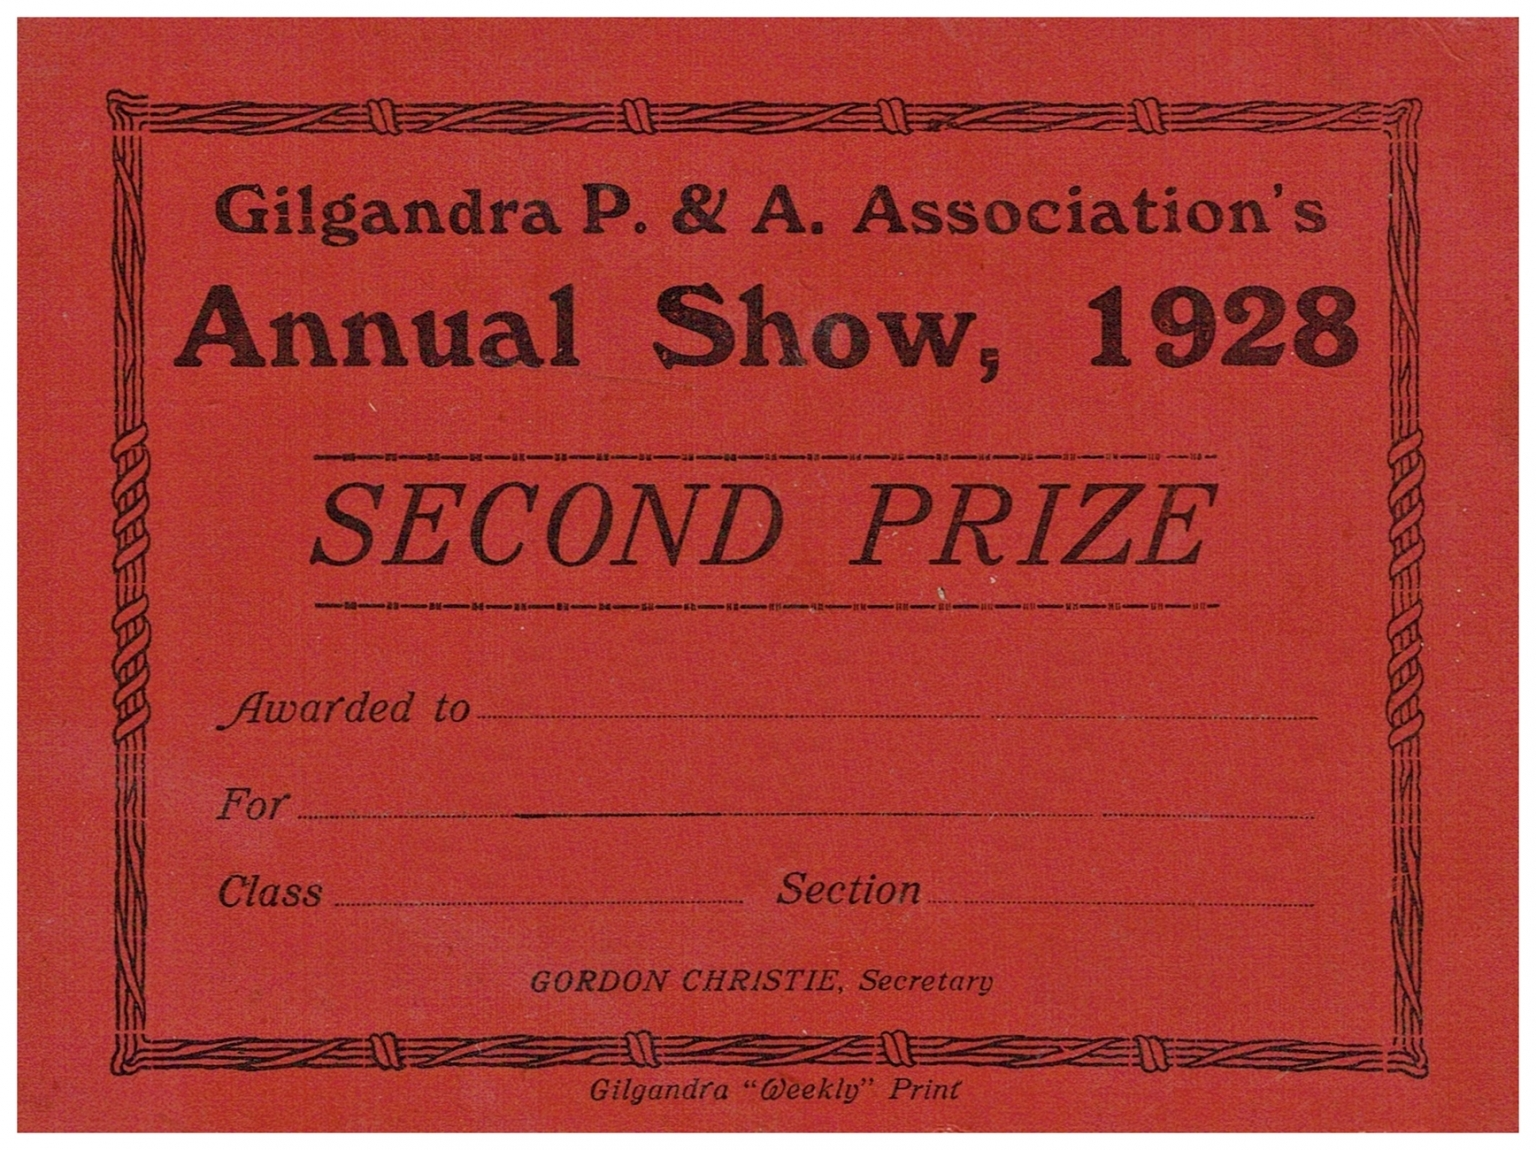 1928 Second Prize Card